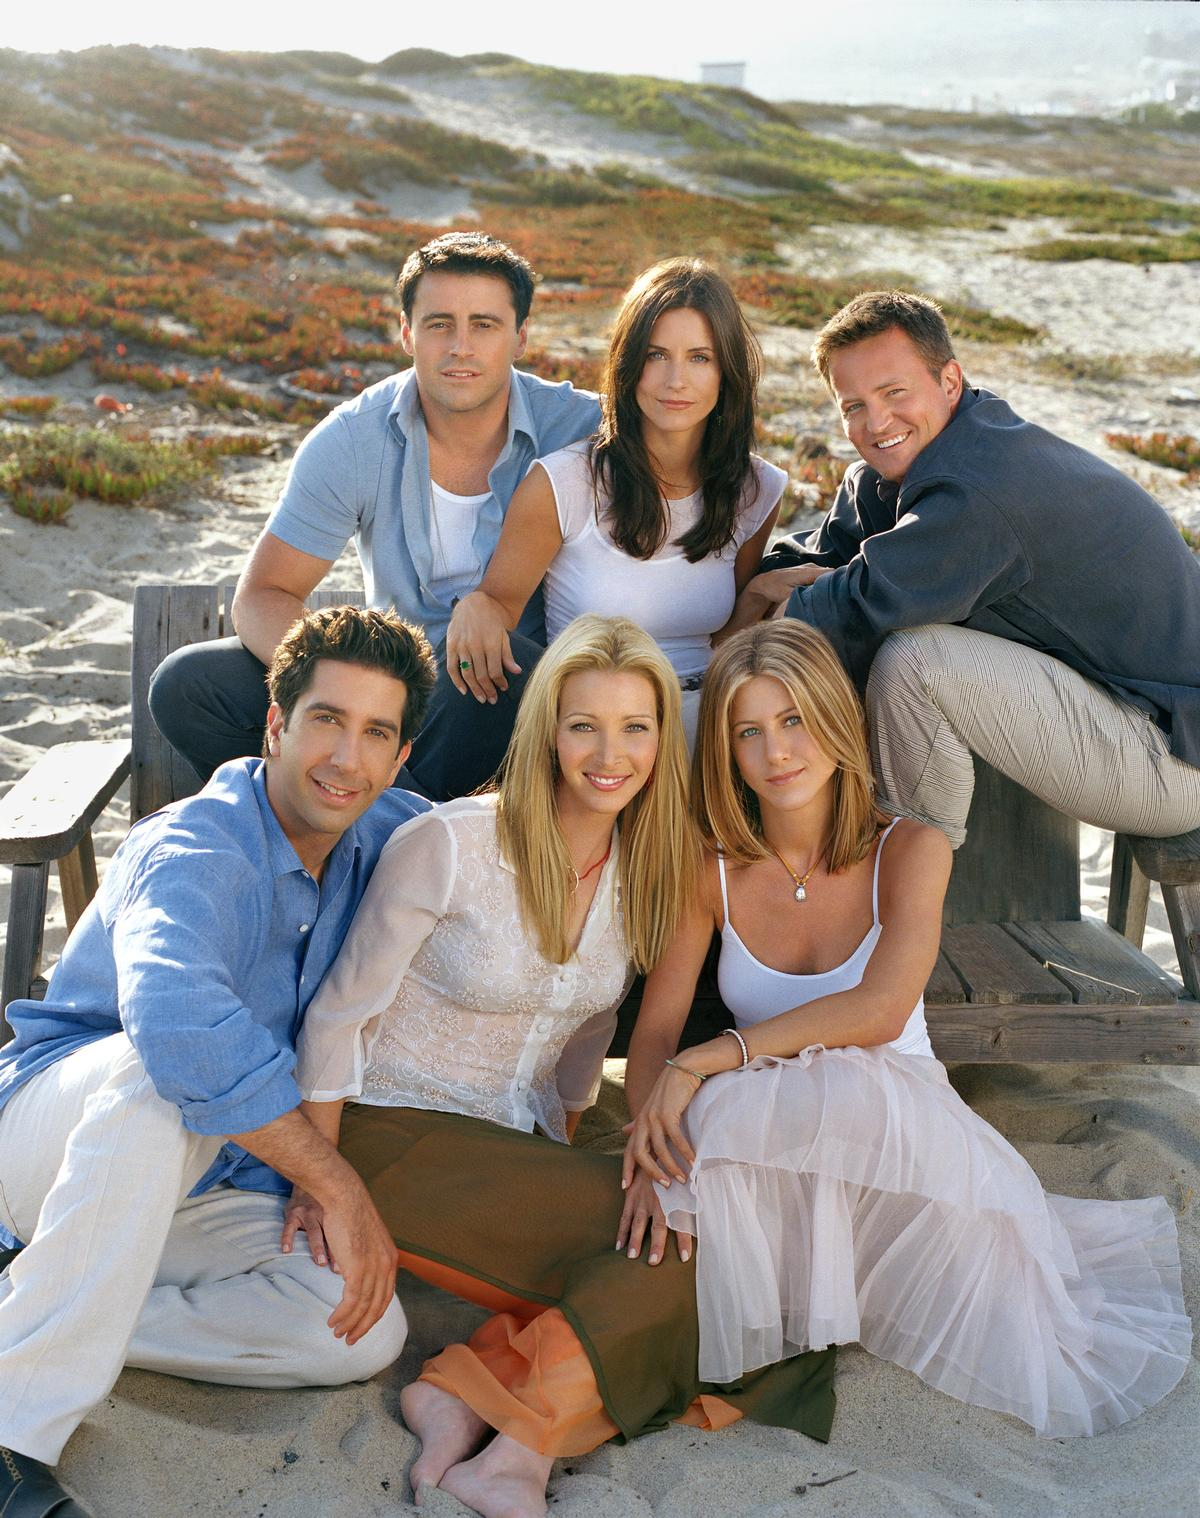 <i>Friends</i> went on to enjoy a hugely successful 10-season run, and remains a go-to show for syndication and streaming services / JRA